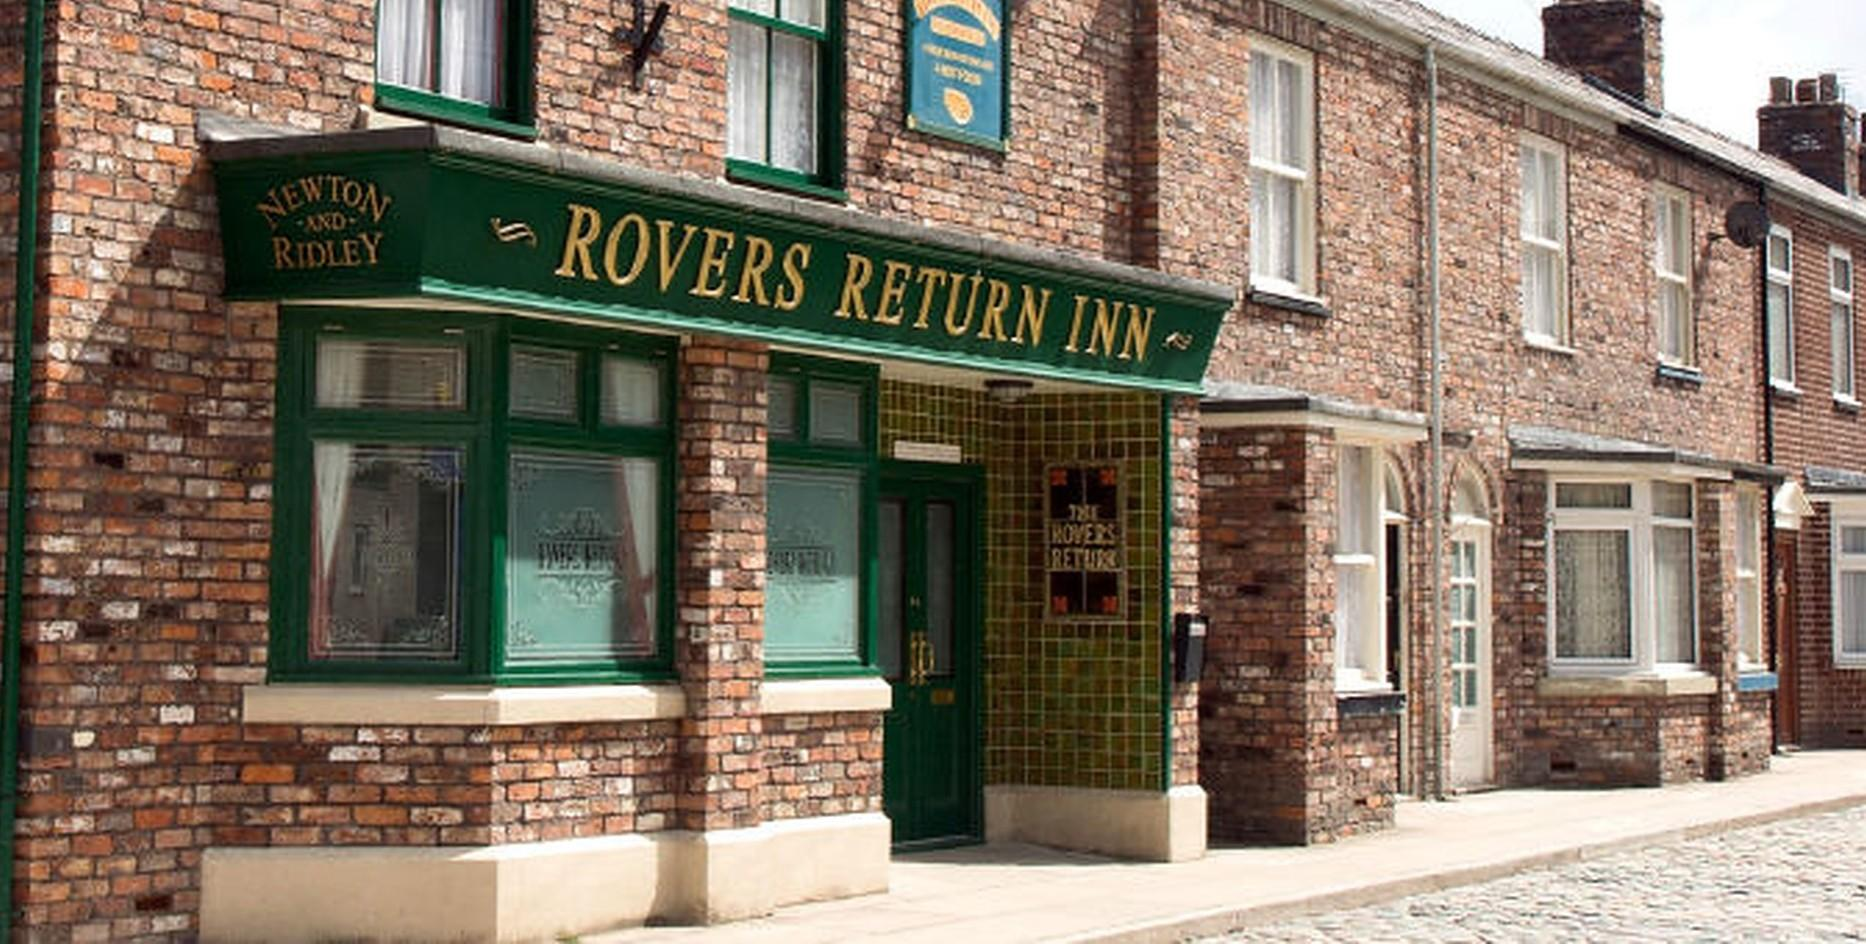 Coronation Street to resume filming without older cast, ITV announces